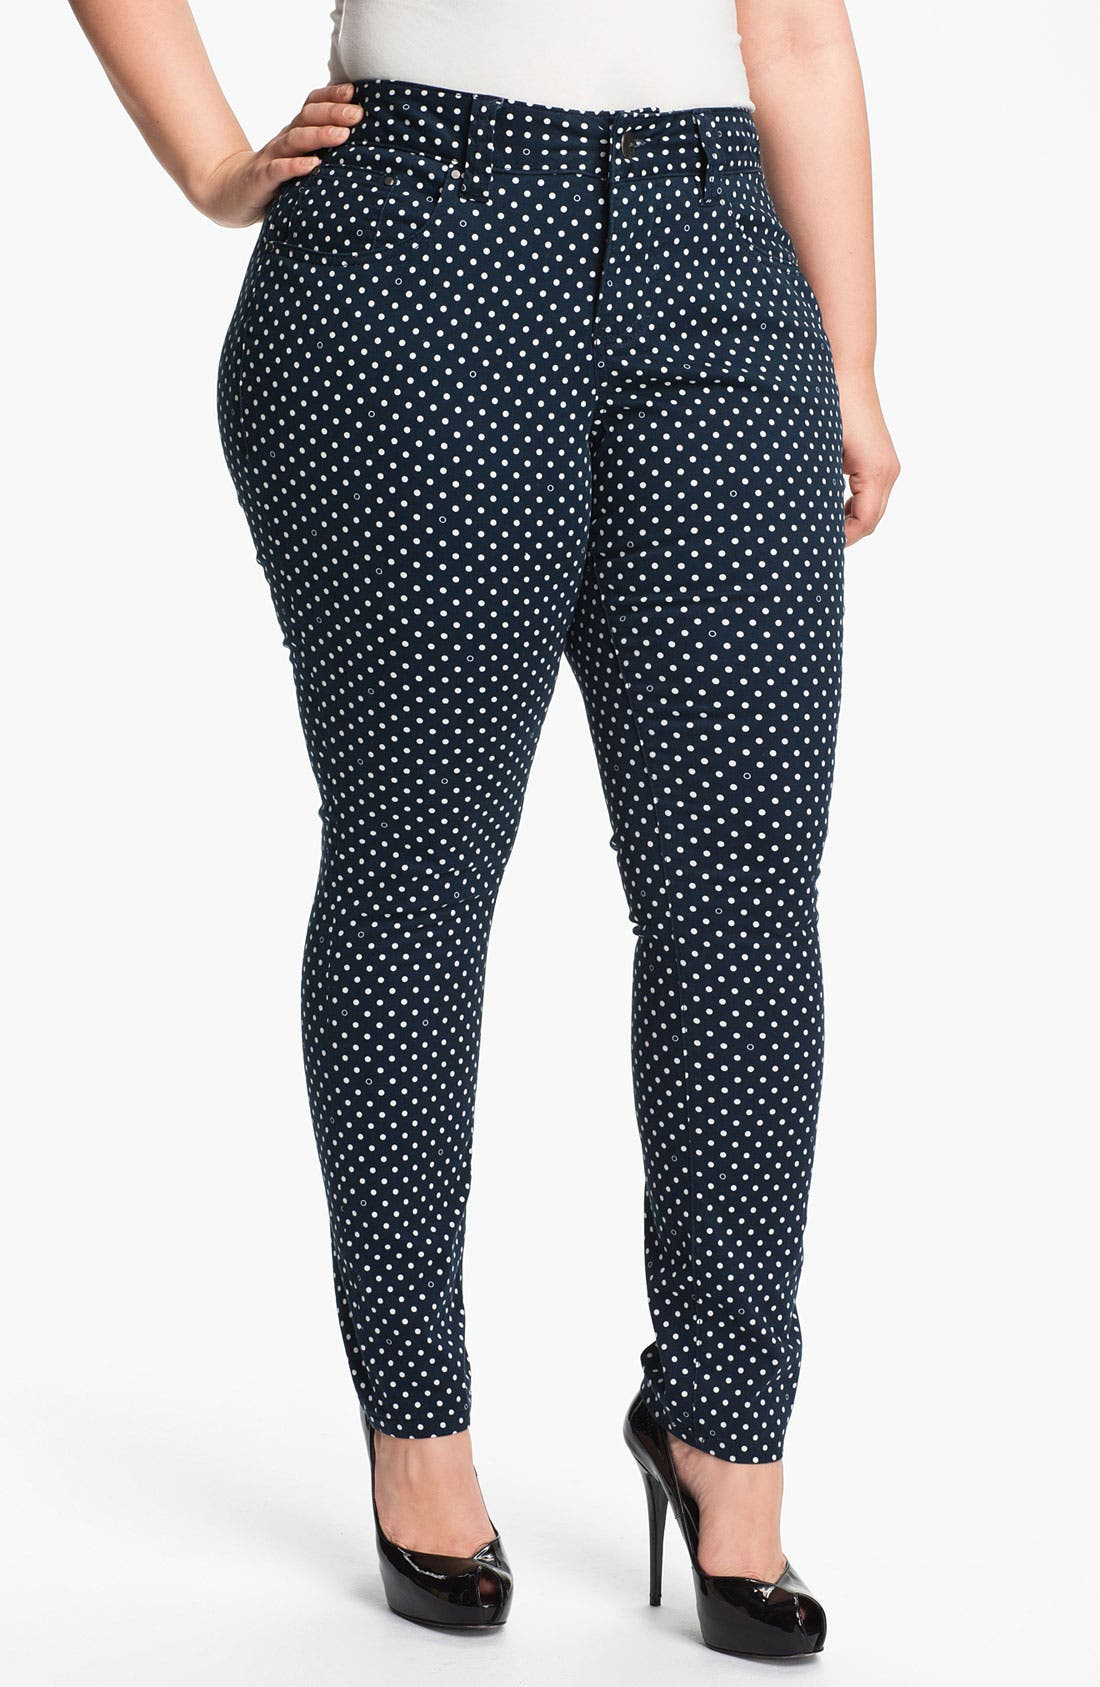 Alternate Image 1 Selected - Jag Jeans Polka Dot Slim Ankle Jeans (Plus Size)